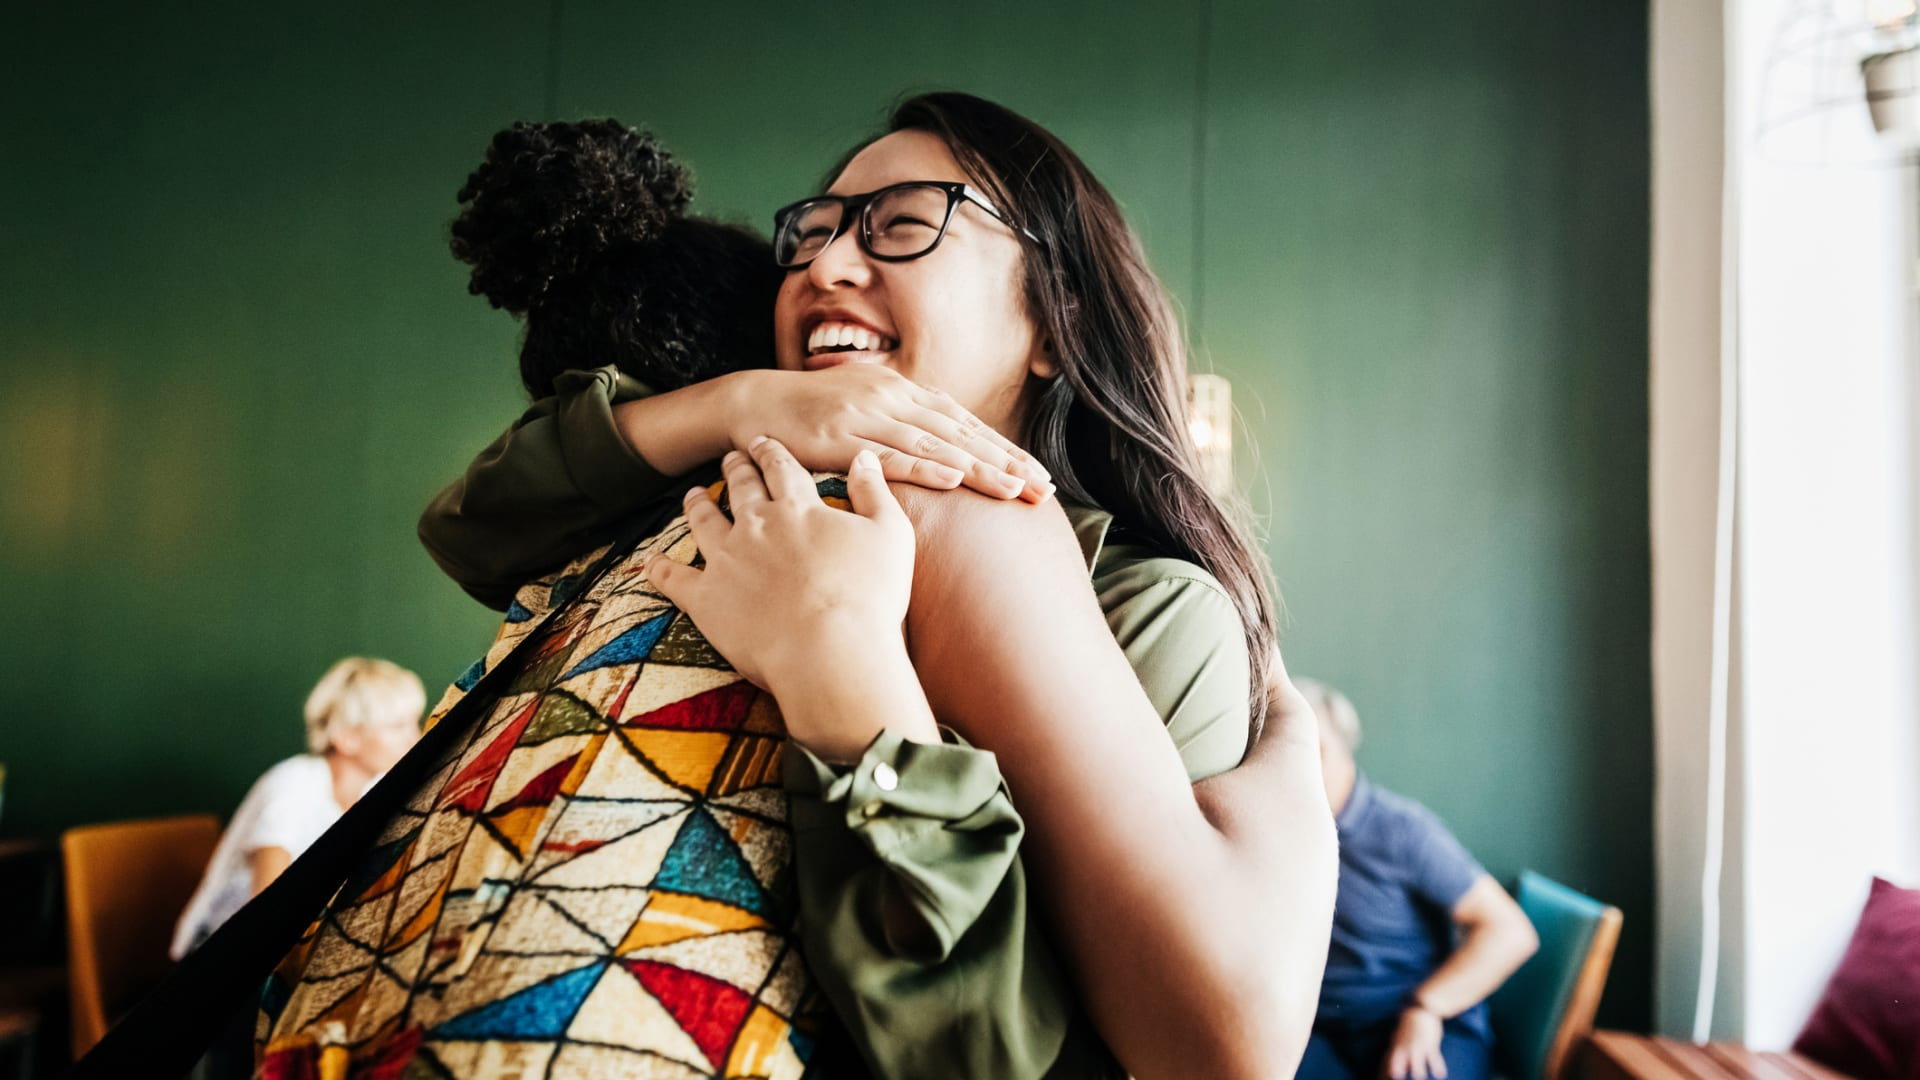 The Professor Behind Yale's Wildly Popular Happiness Course: The Best Self-Care Is Kindness to Others